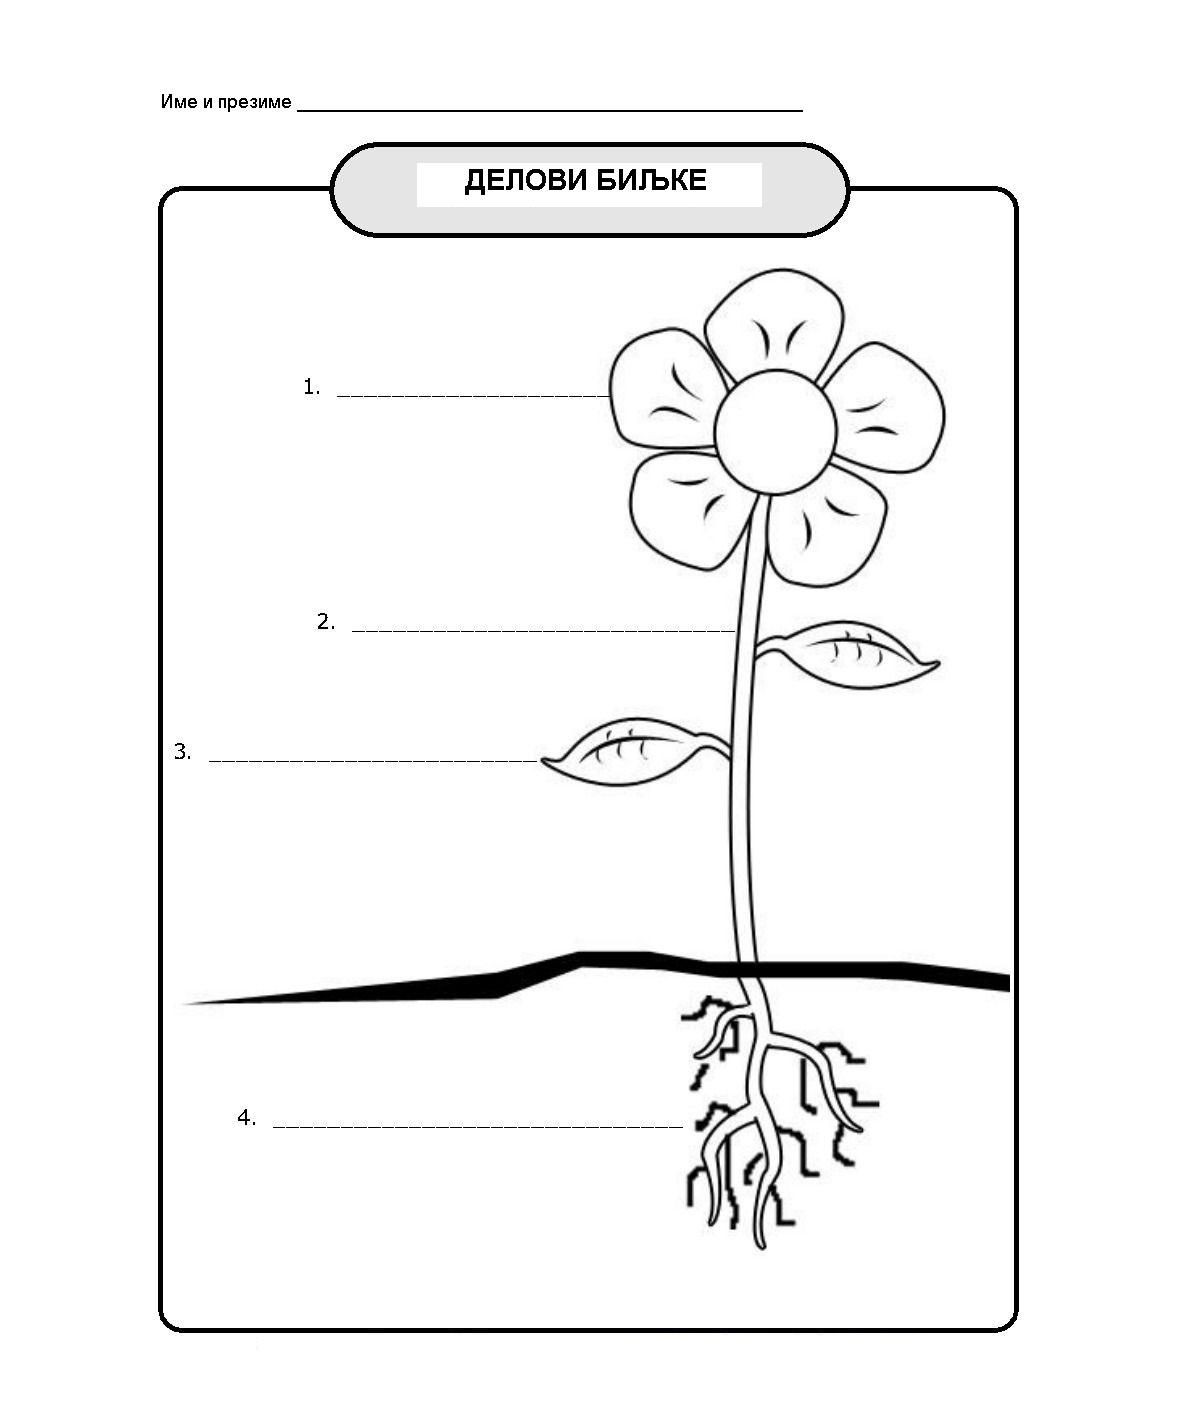 Science Worksheet First Grade °Å¸ñ€°²°¸ ñ€°°°·ñ€°µ°´ Reading